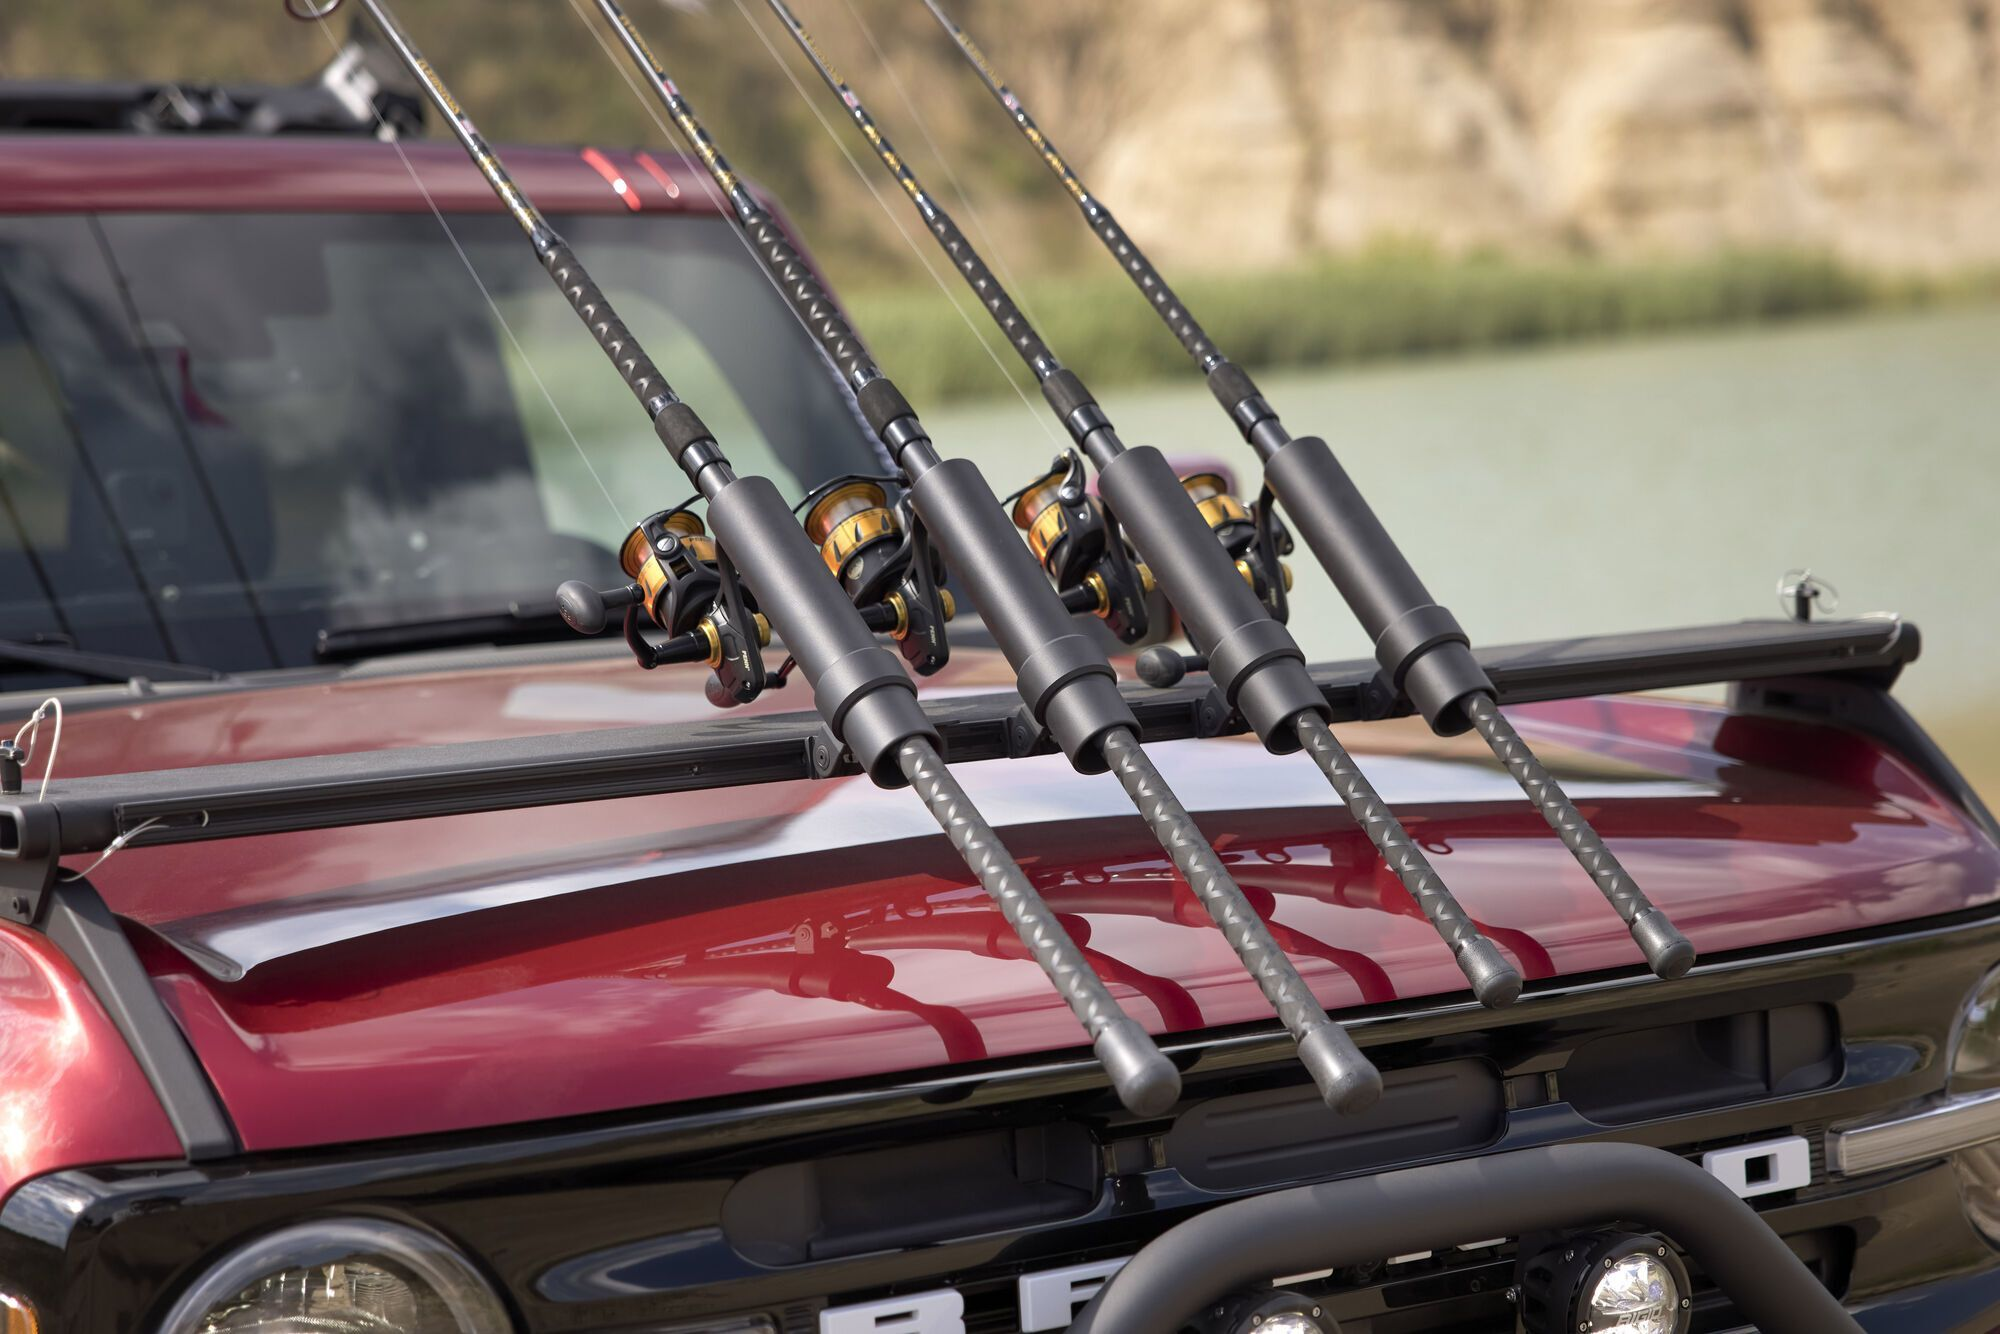 Ford Bronco Outer Banks Fishing Guide. Фото: